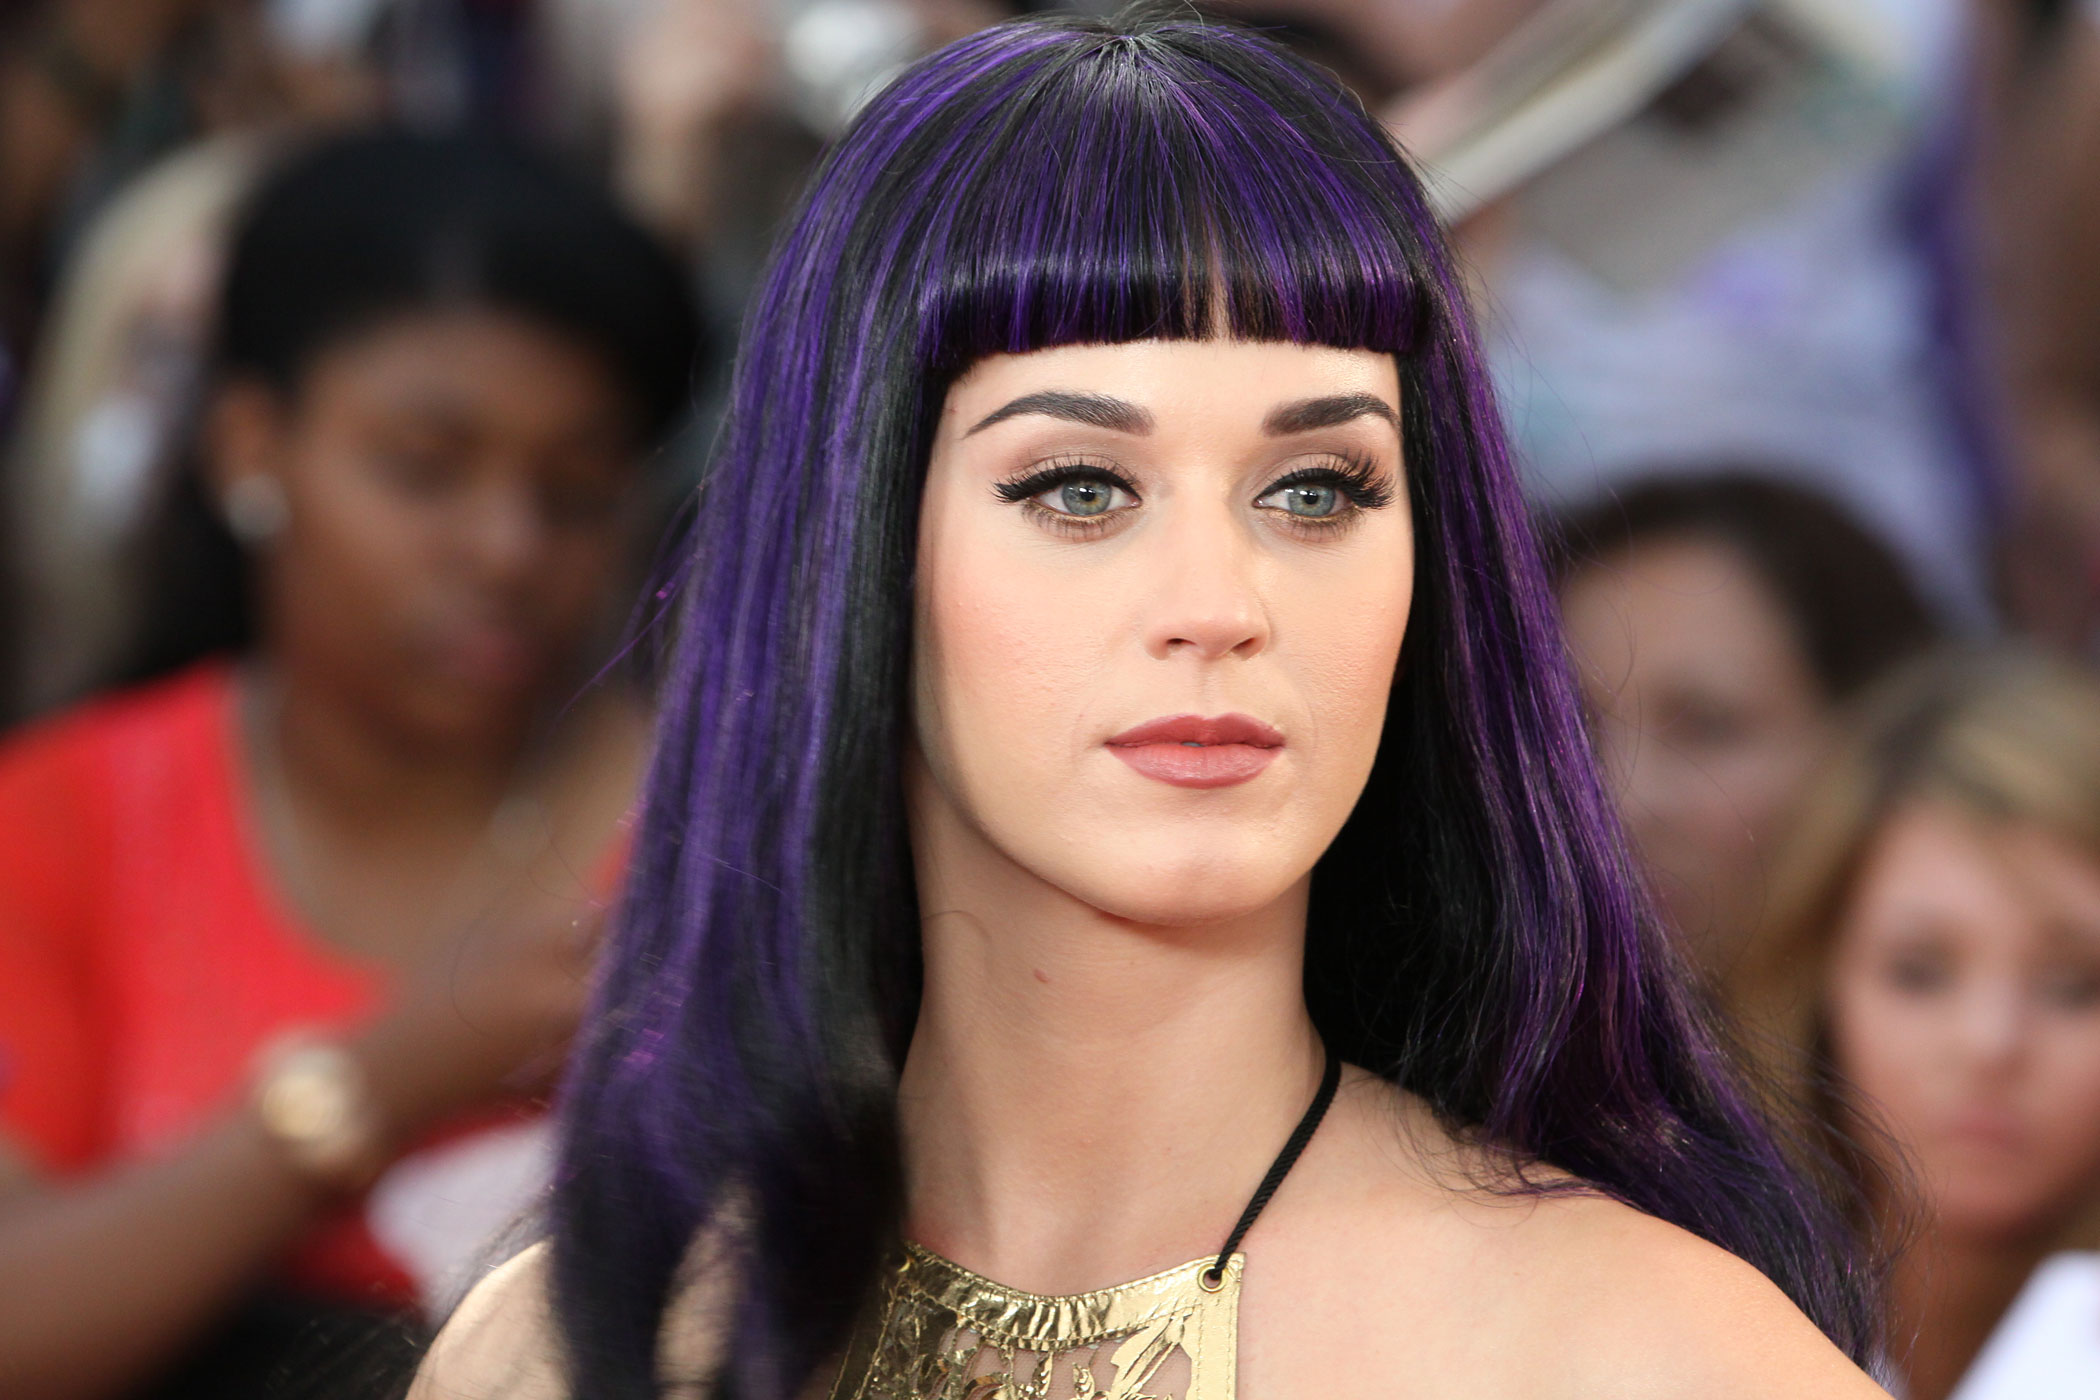 Katy Perry on the Red Carpet at The MMVA's 2012 in Toronto, June 17th, 2012.